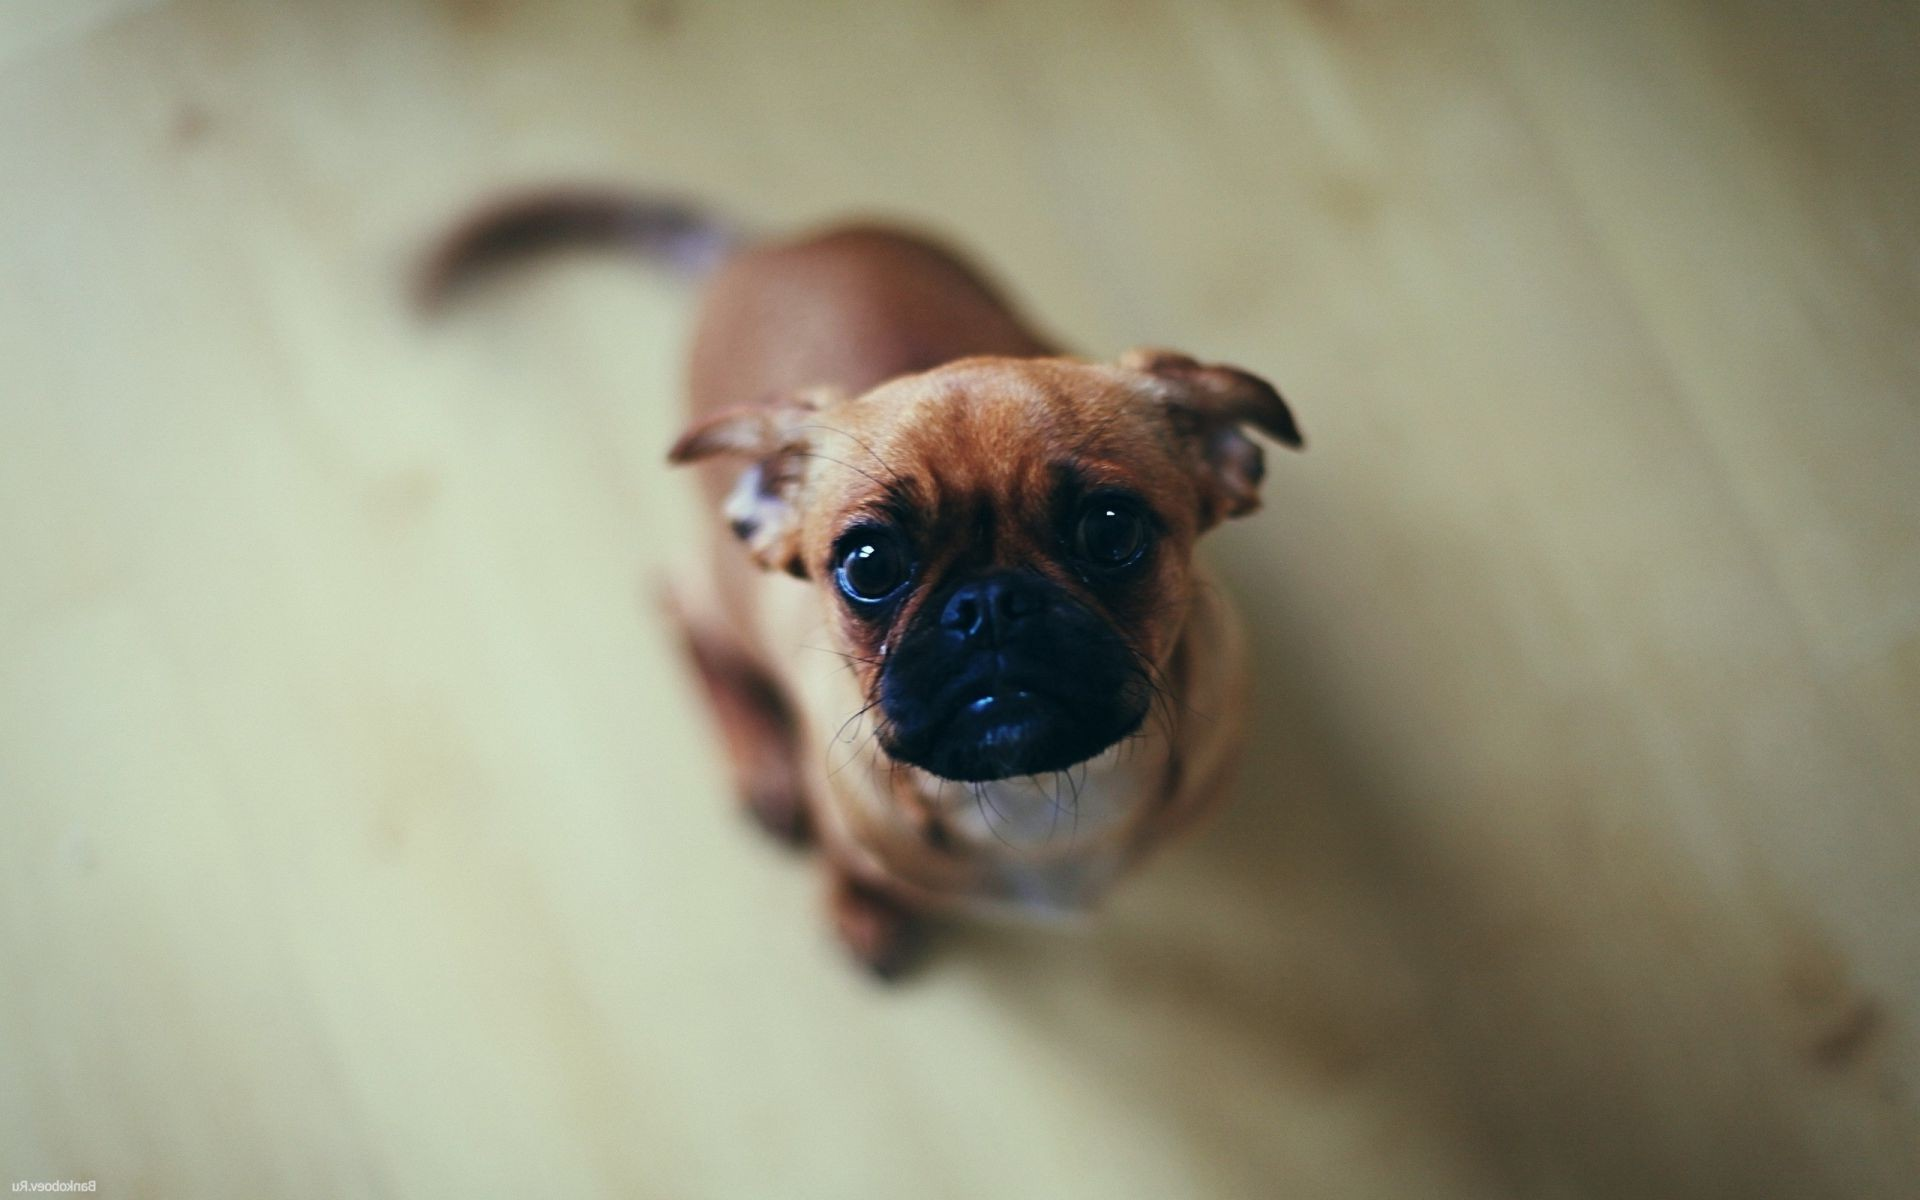 dogs dog portrait mammal cute pet canine puppy funny animal little one looking eye